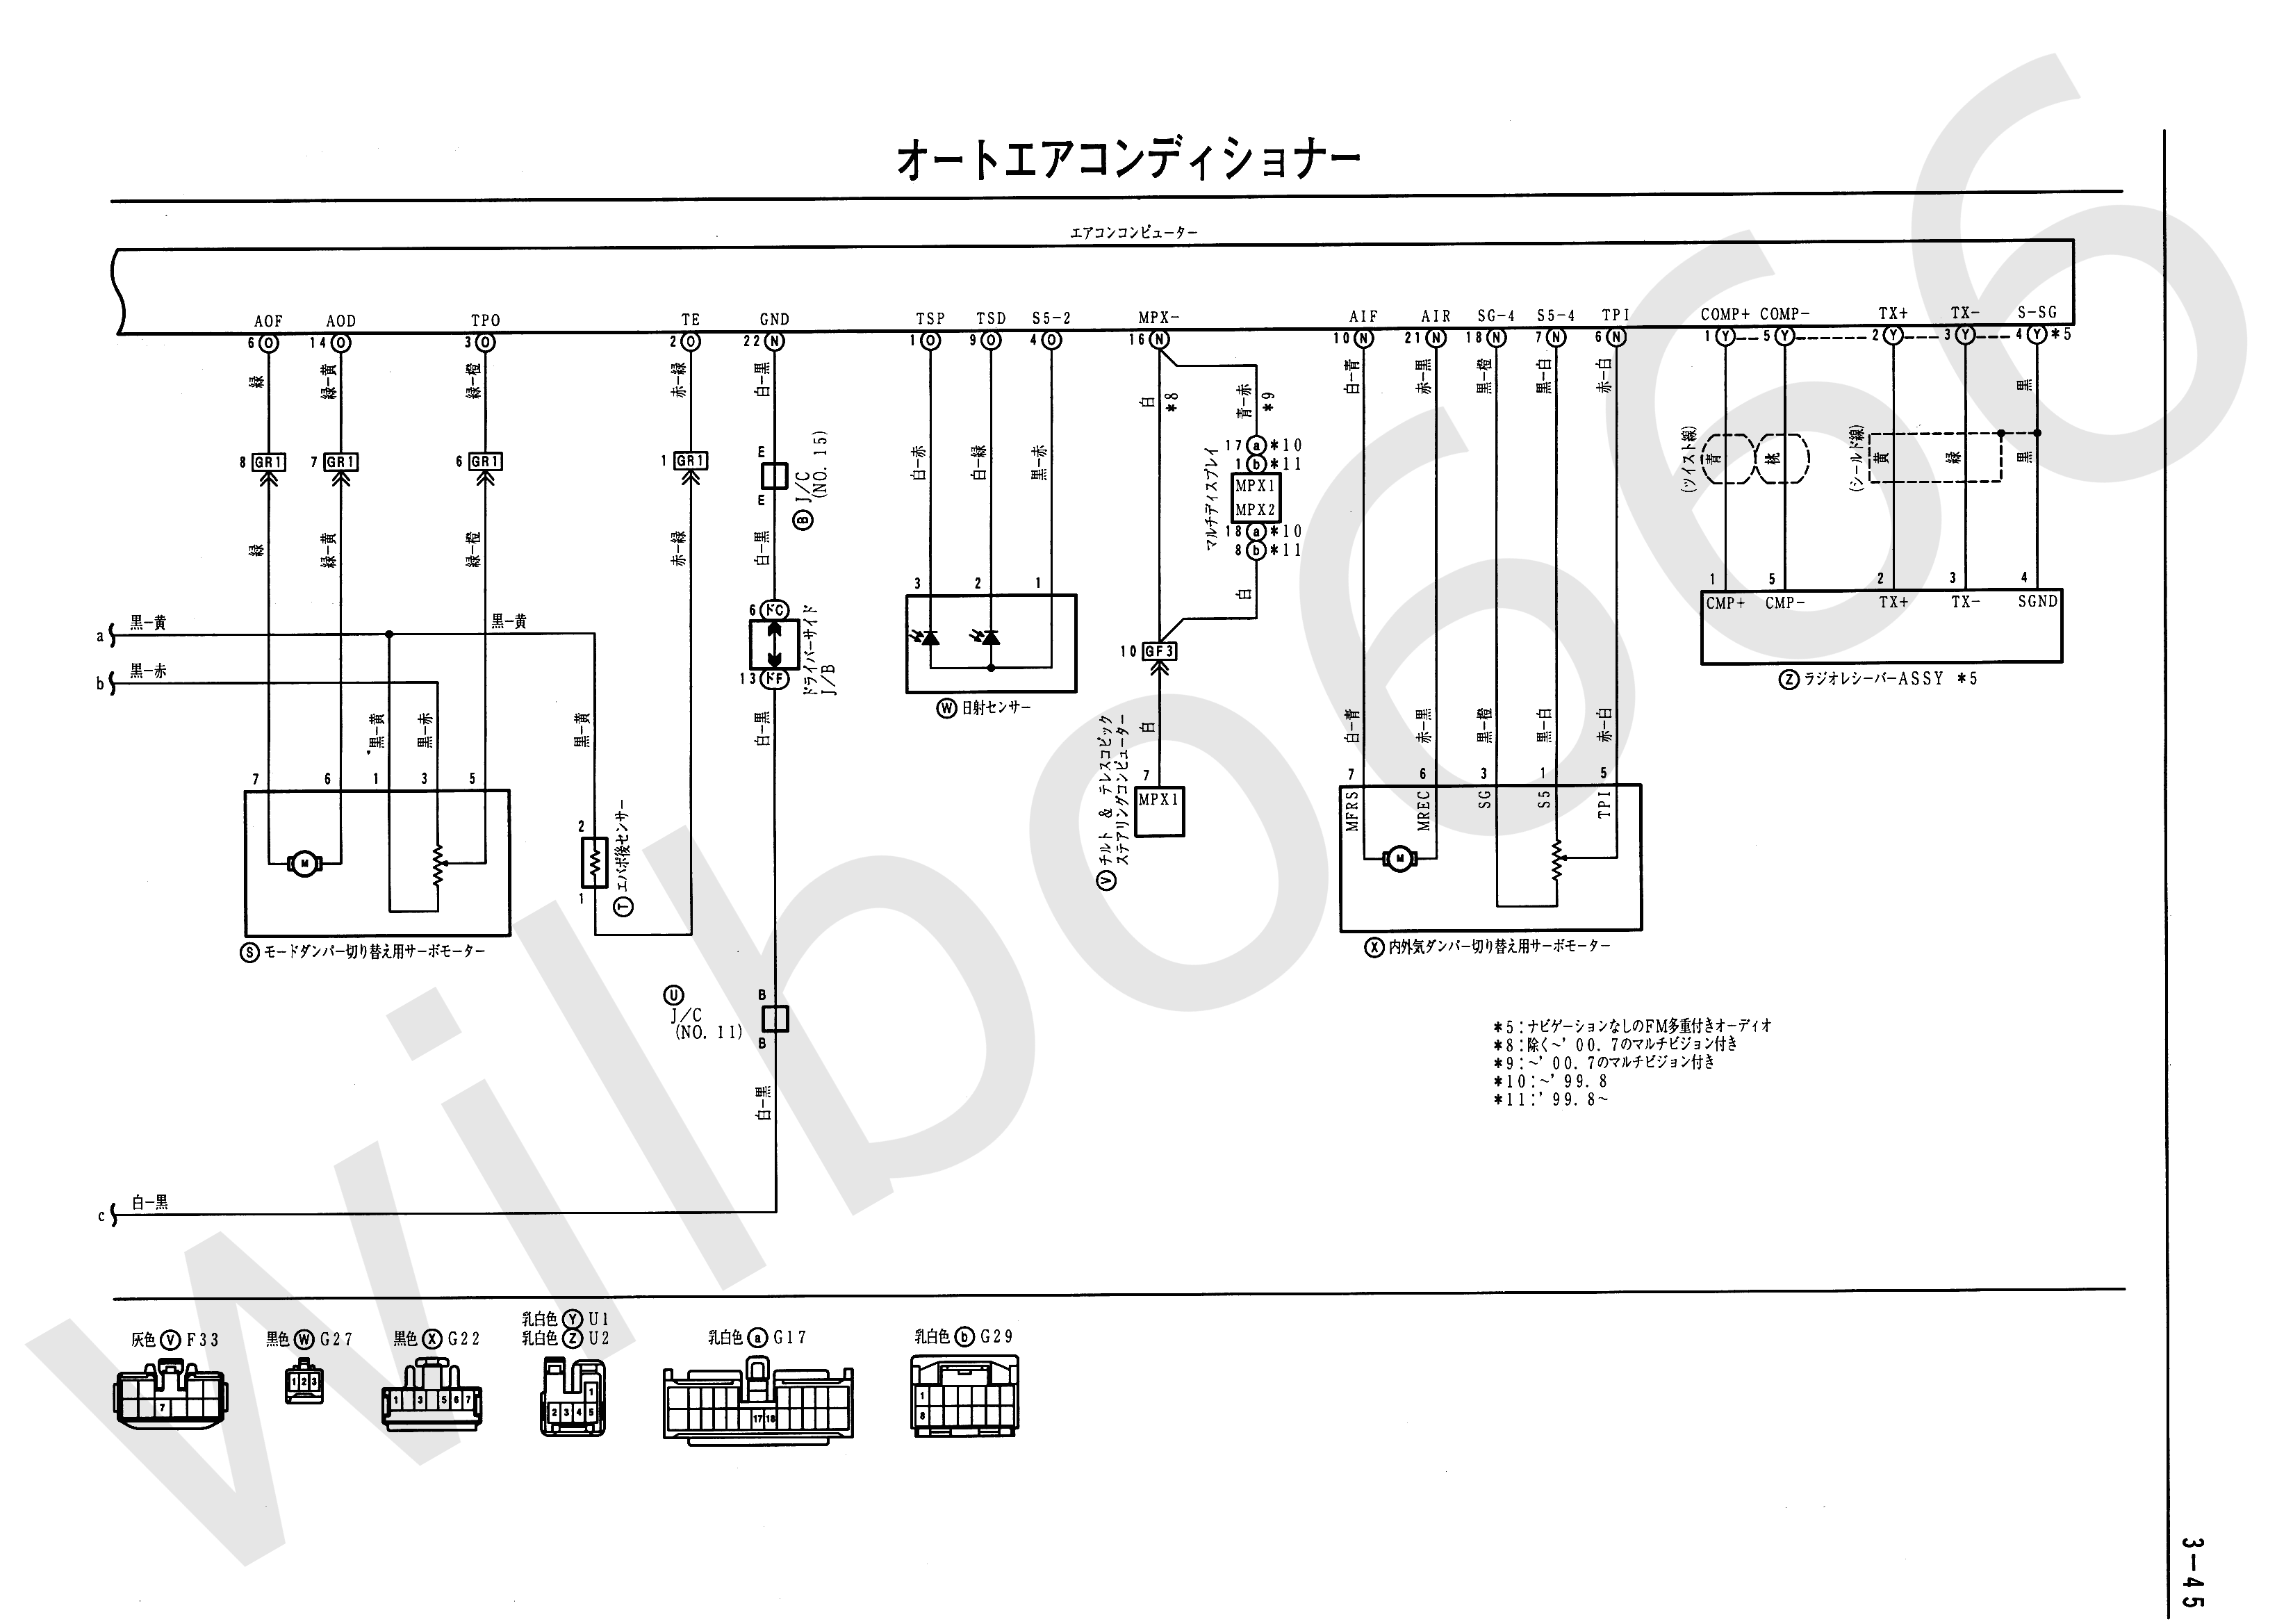 JZS161 Electrical Wiring Diagram 6748505 3 45?resize\\=3300%2C2337 rough house 50cc scooter wiring diagram kymco scooter parts chinese scooter wiring diagram at edmiracle.co